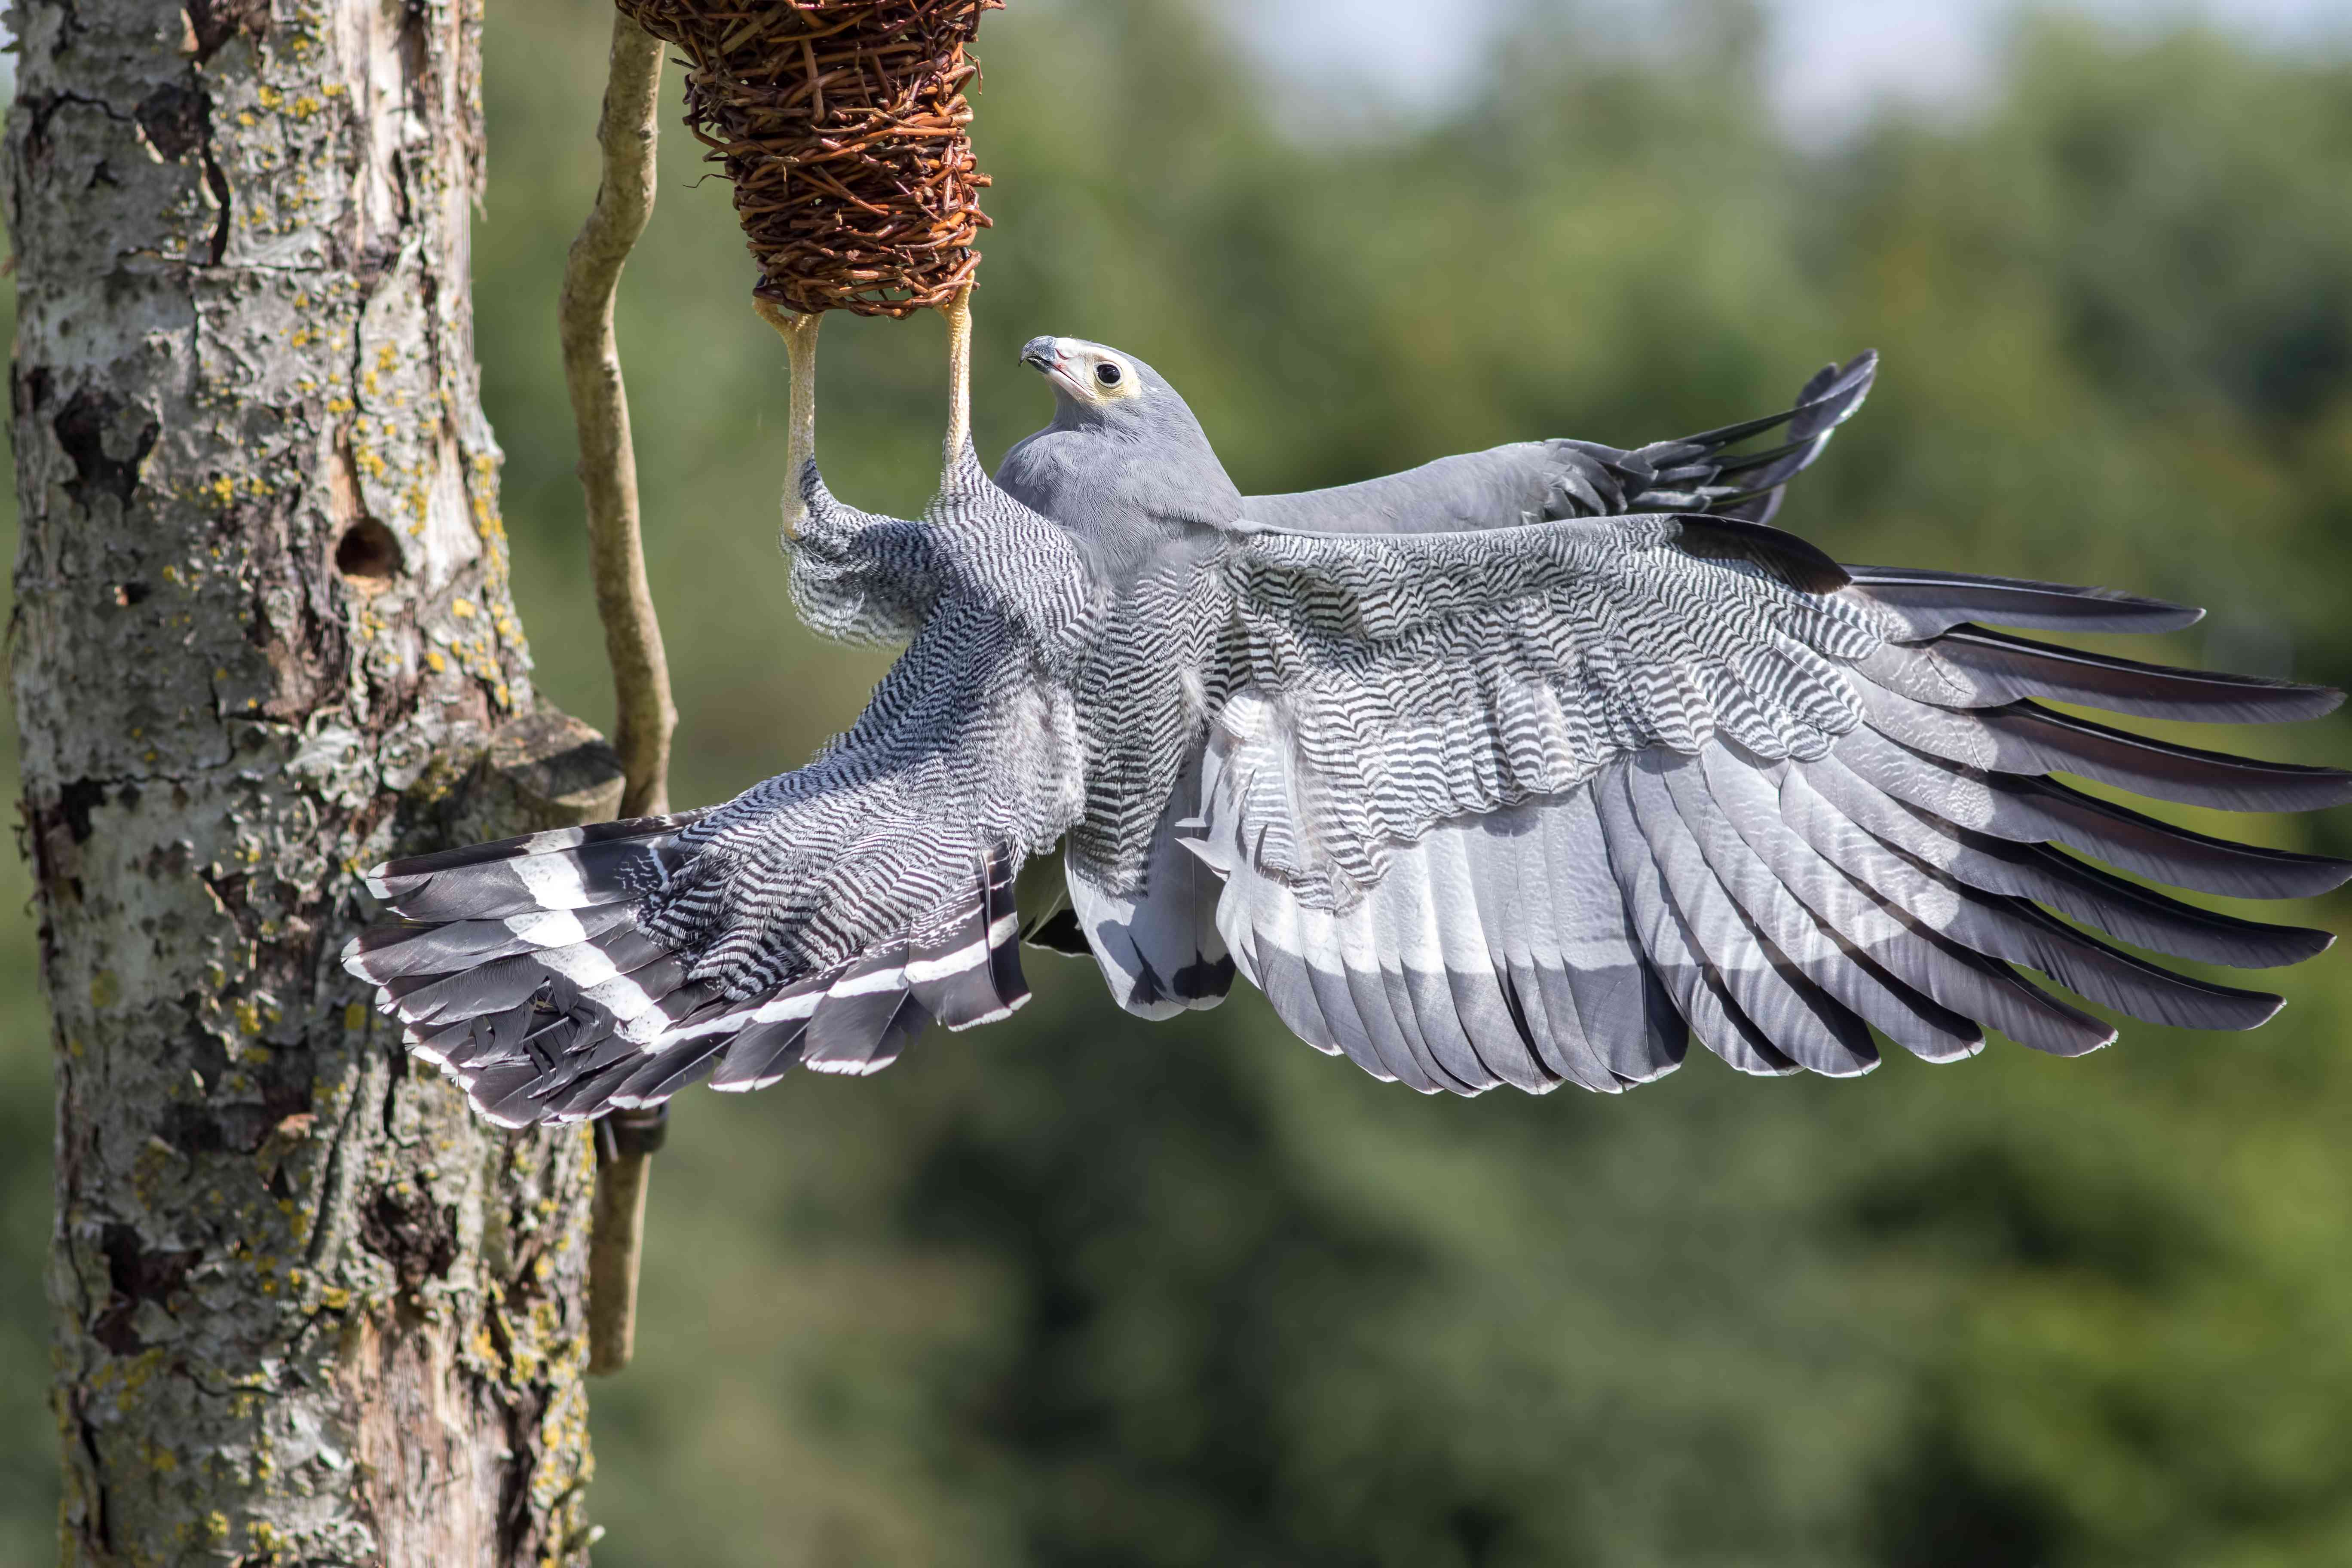 Amazing animal. African Harrier hawk bird of prey foraging for food at nest.